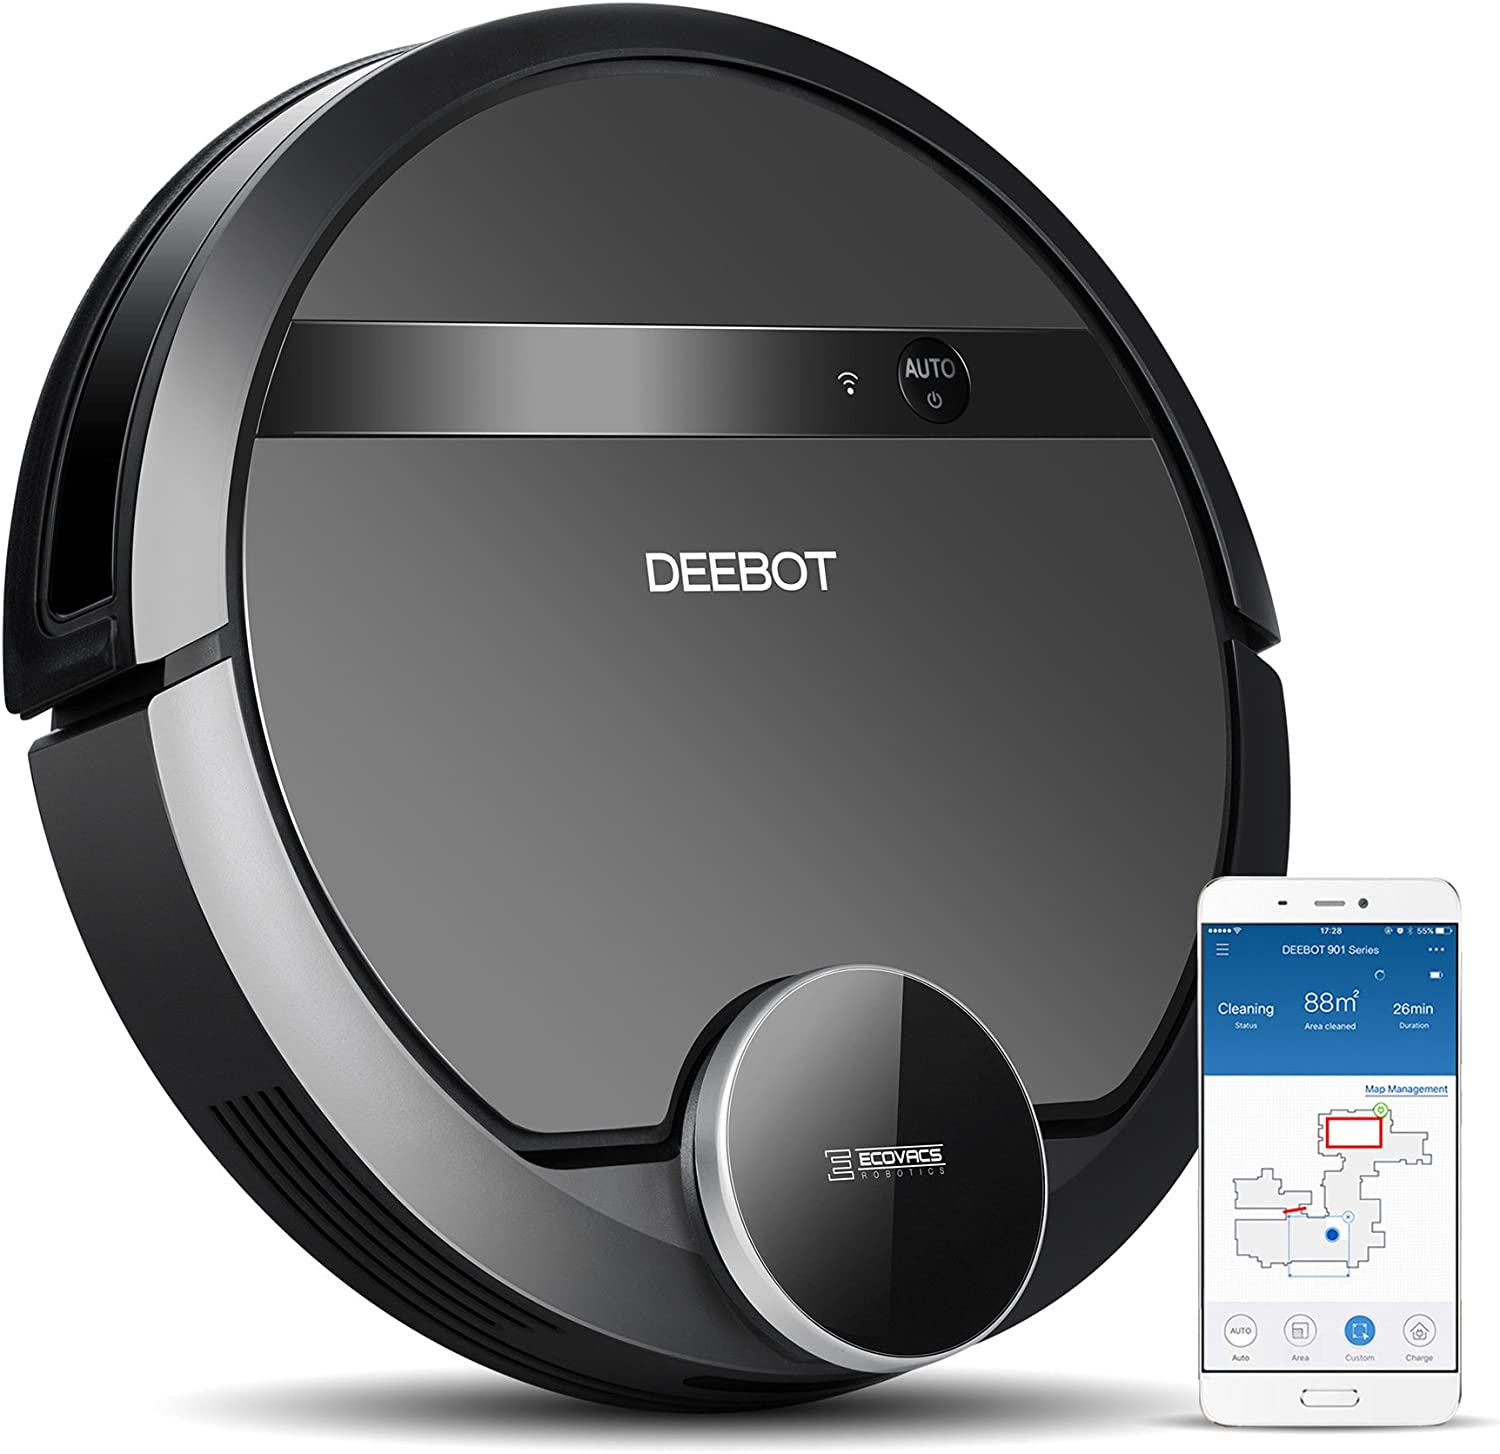 Save £120 on an Ecovacs robot vacuum